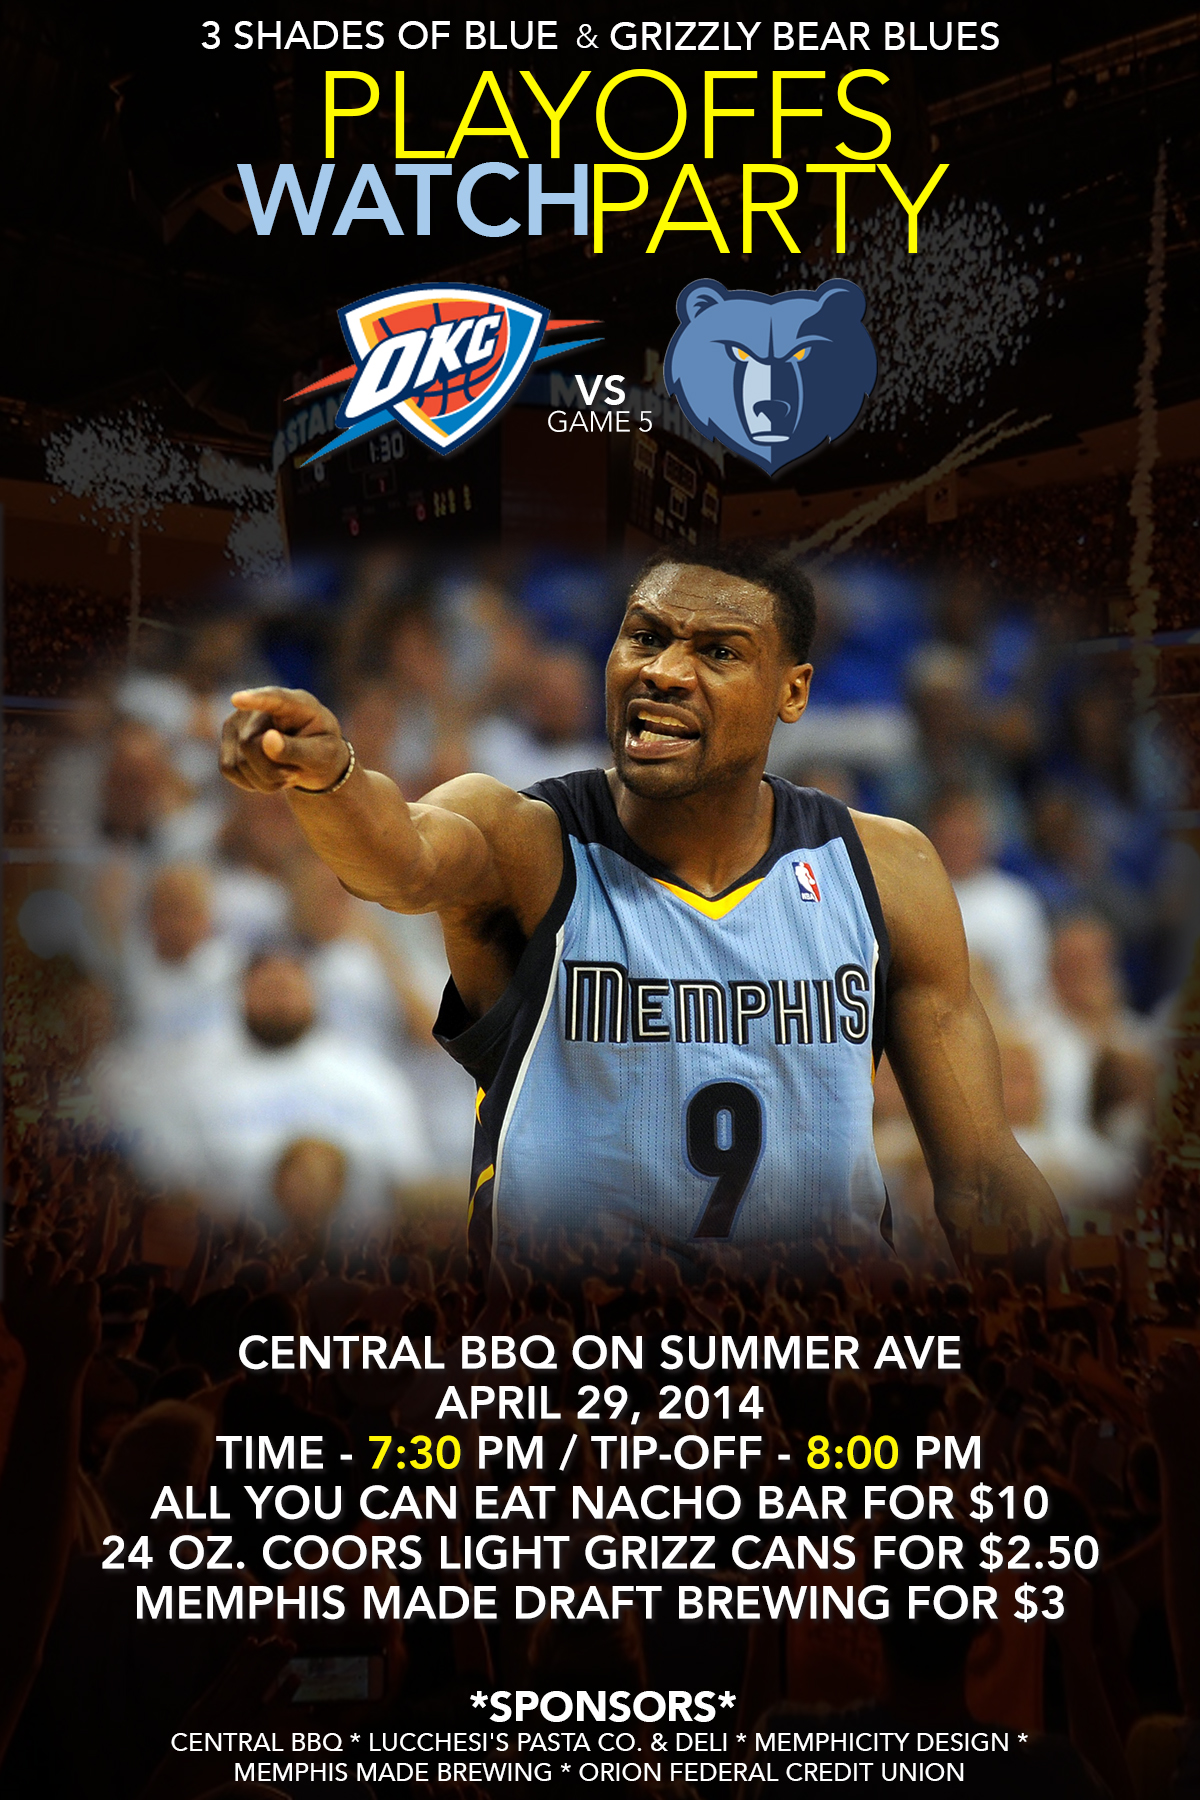 NBA Playoffs 2014 - 3SOB.com & GBB Watch Party for Grizzlies at Thunder Game 5 on 4-29-14 ...